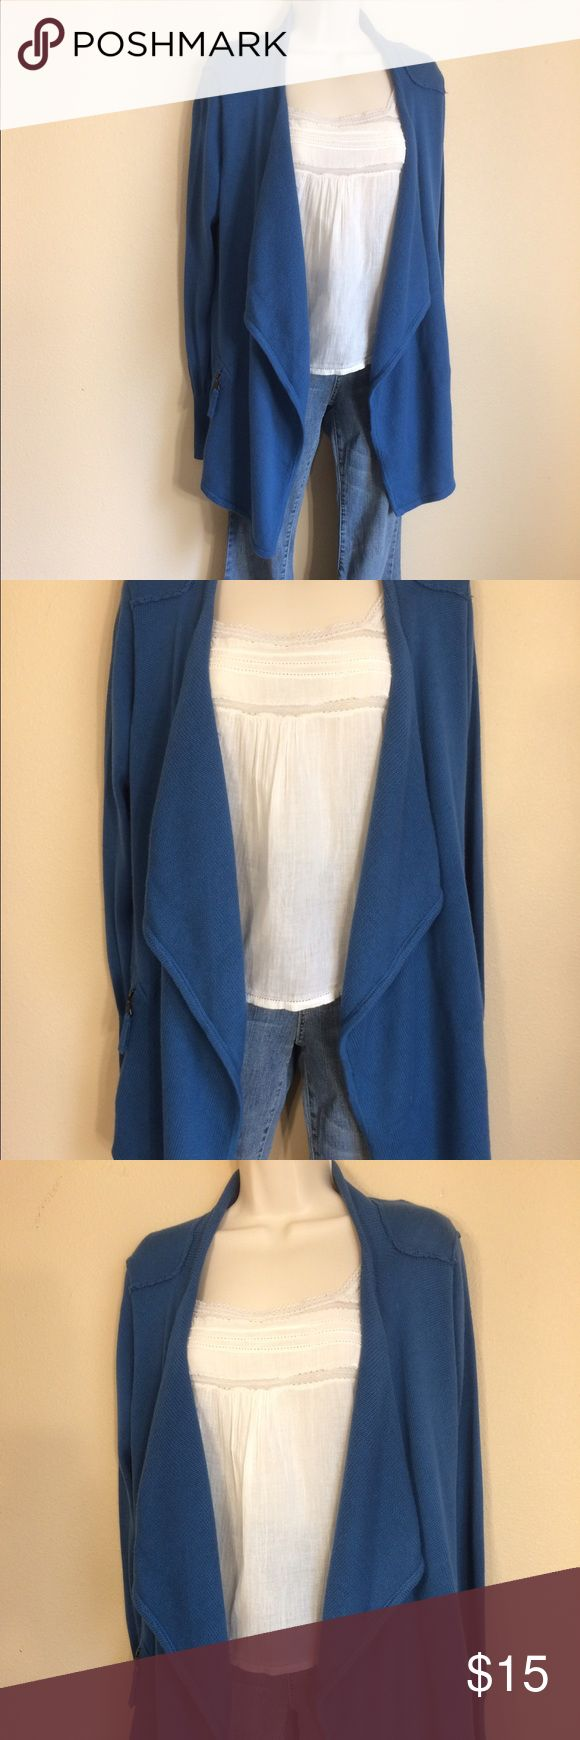 NY Collection Blue Open Cardigan NWOT Brand-new NY collection blue cardigan women's size small in perfect condition. Has zipper pockets on each side. Drapes longer in the front. Let me know if you have any questions. I am happy to help. Thanks for looking! NY Collection Sweaters Cardigans